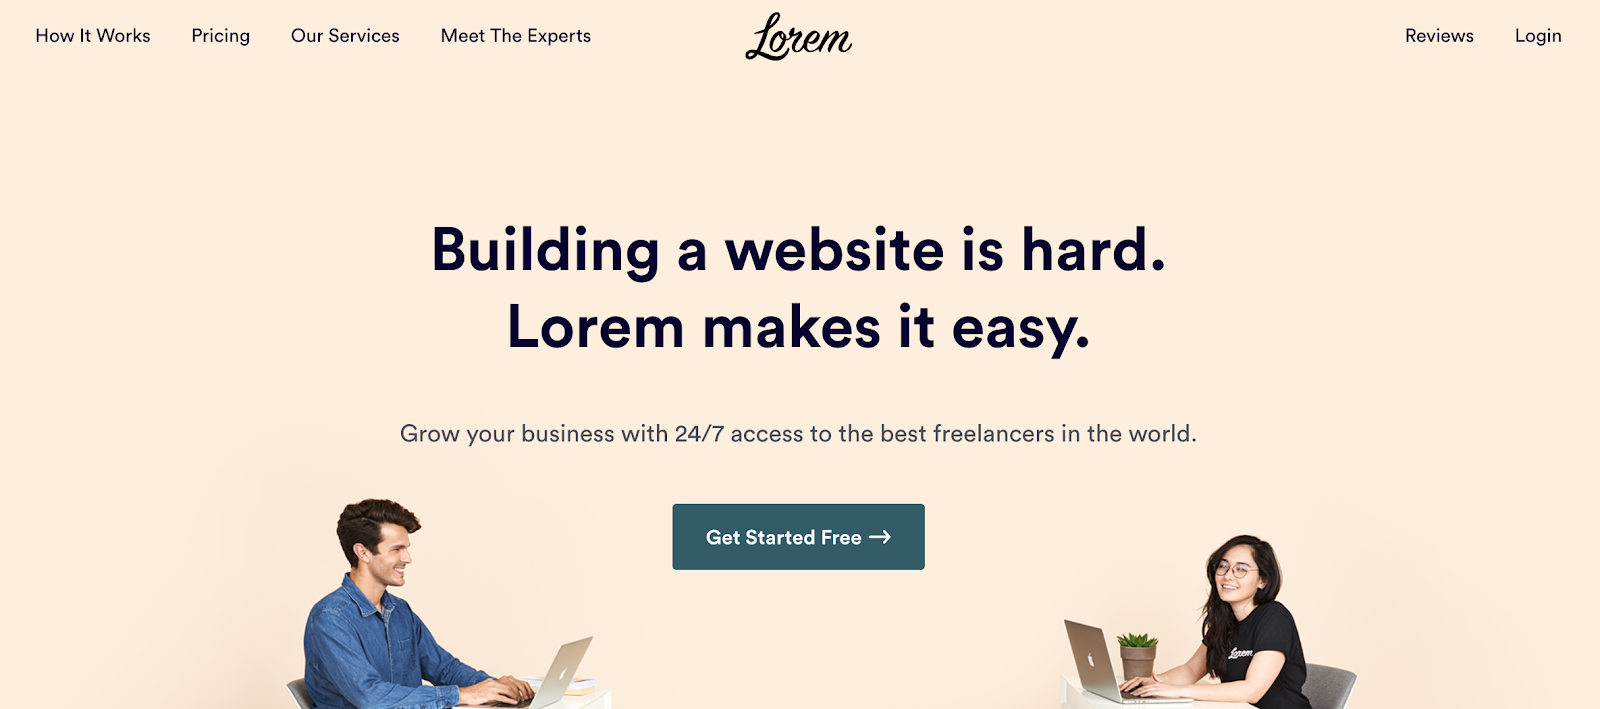 Lorem offers on-demand web dev help to get your website done